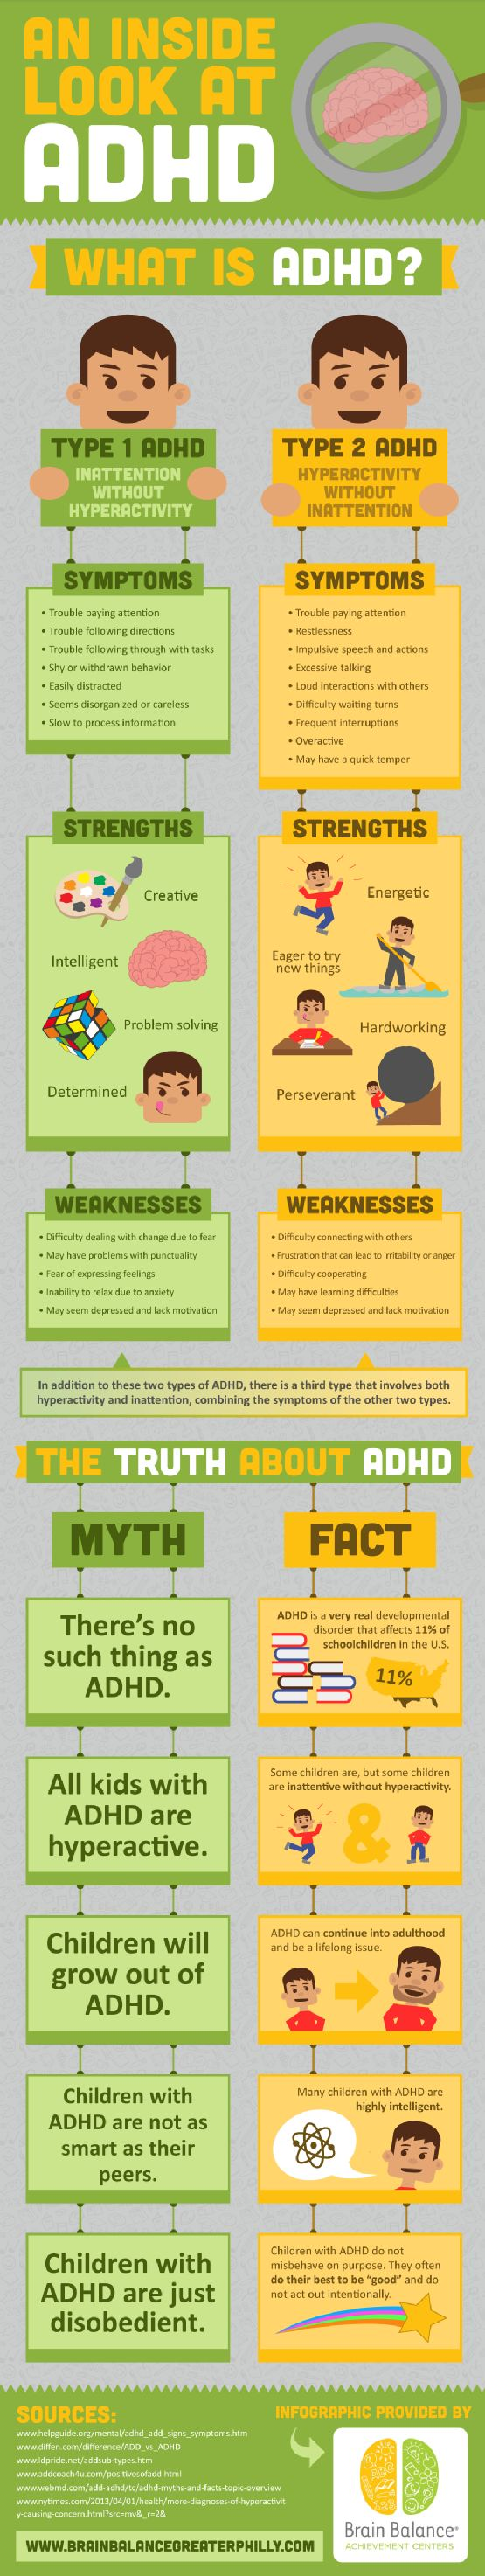 An Inside Look At ADHD - [INFOGRAPHIC] - Brain Balance Greater Philly, Springfield, PA